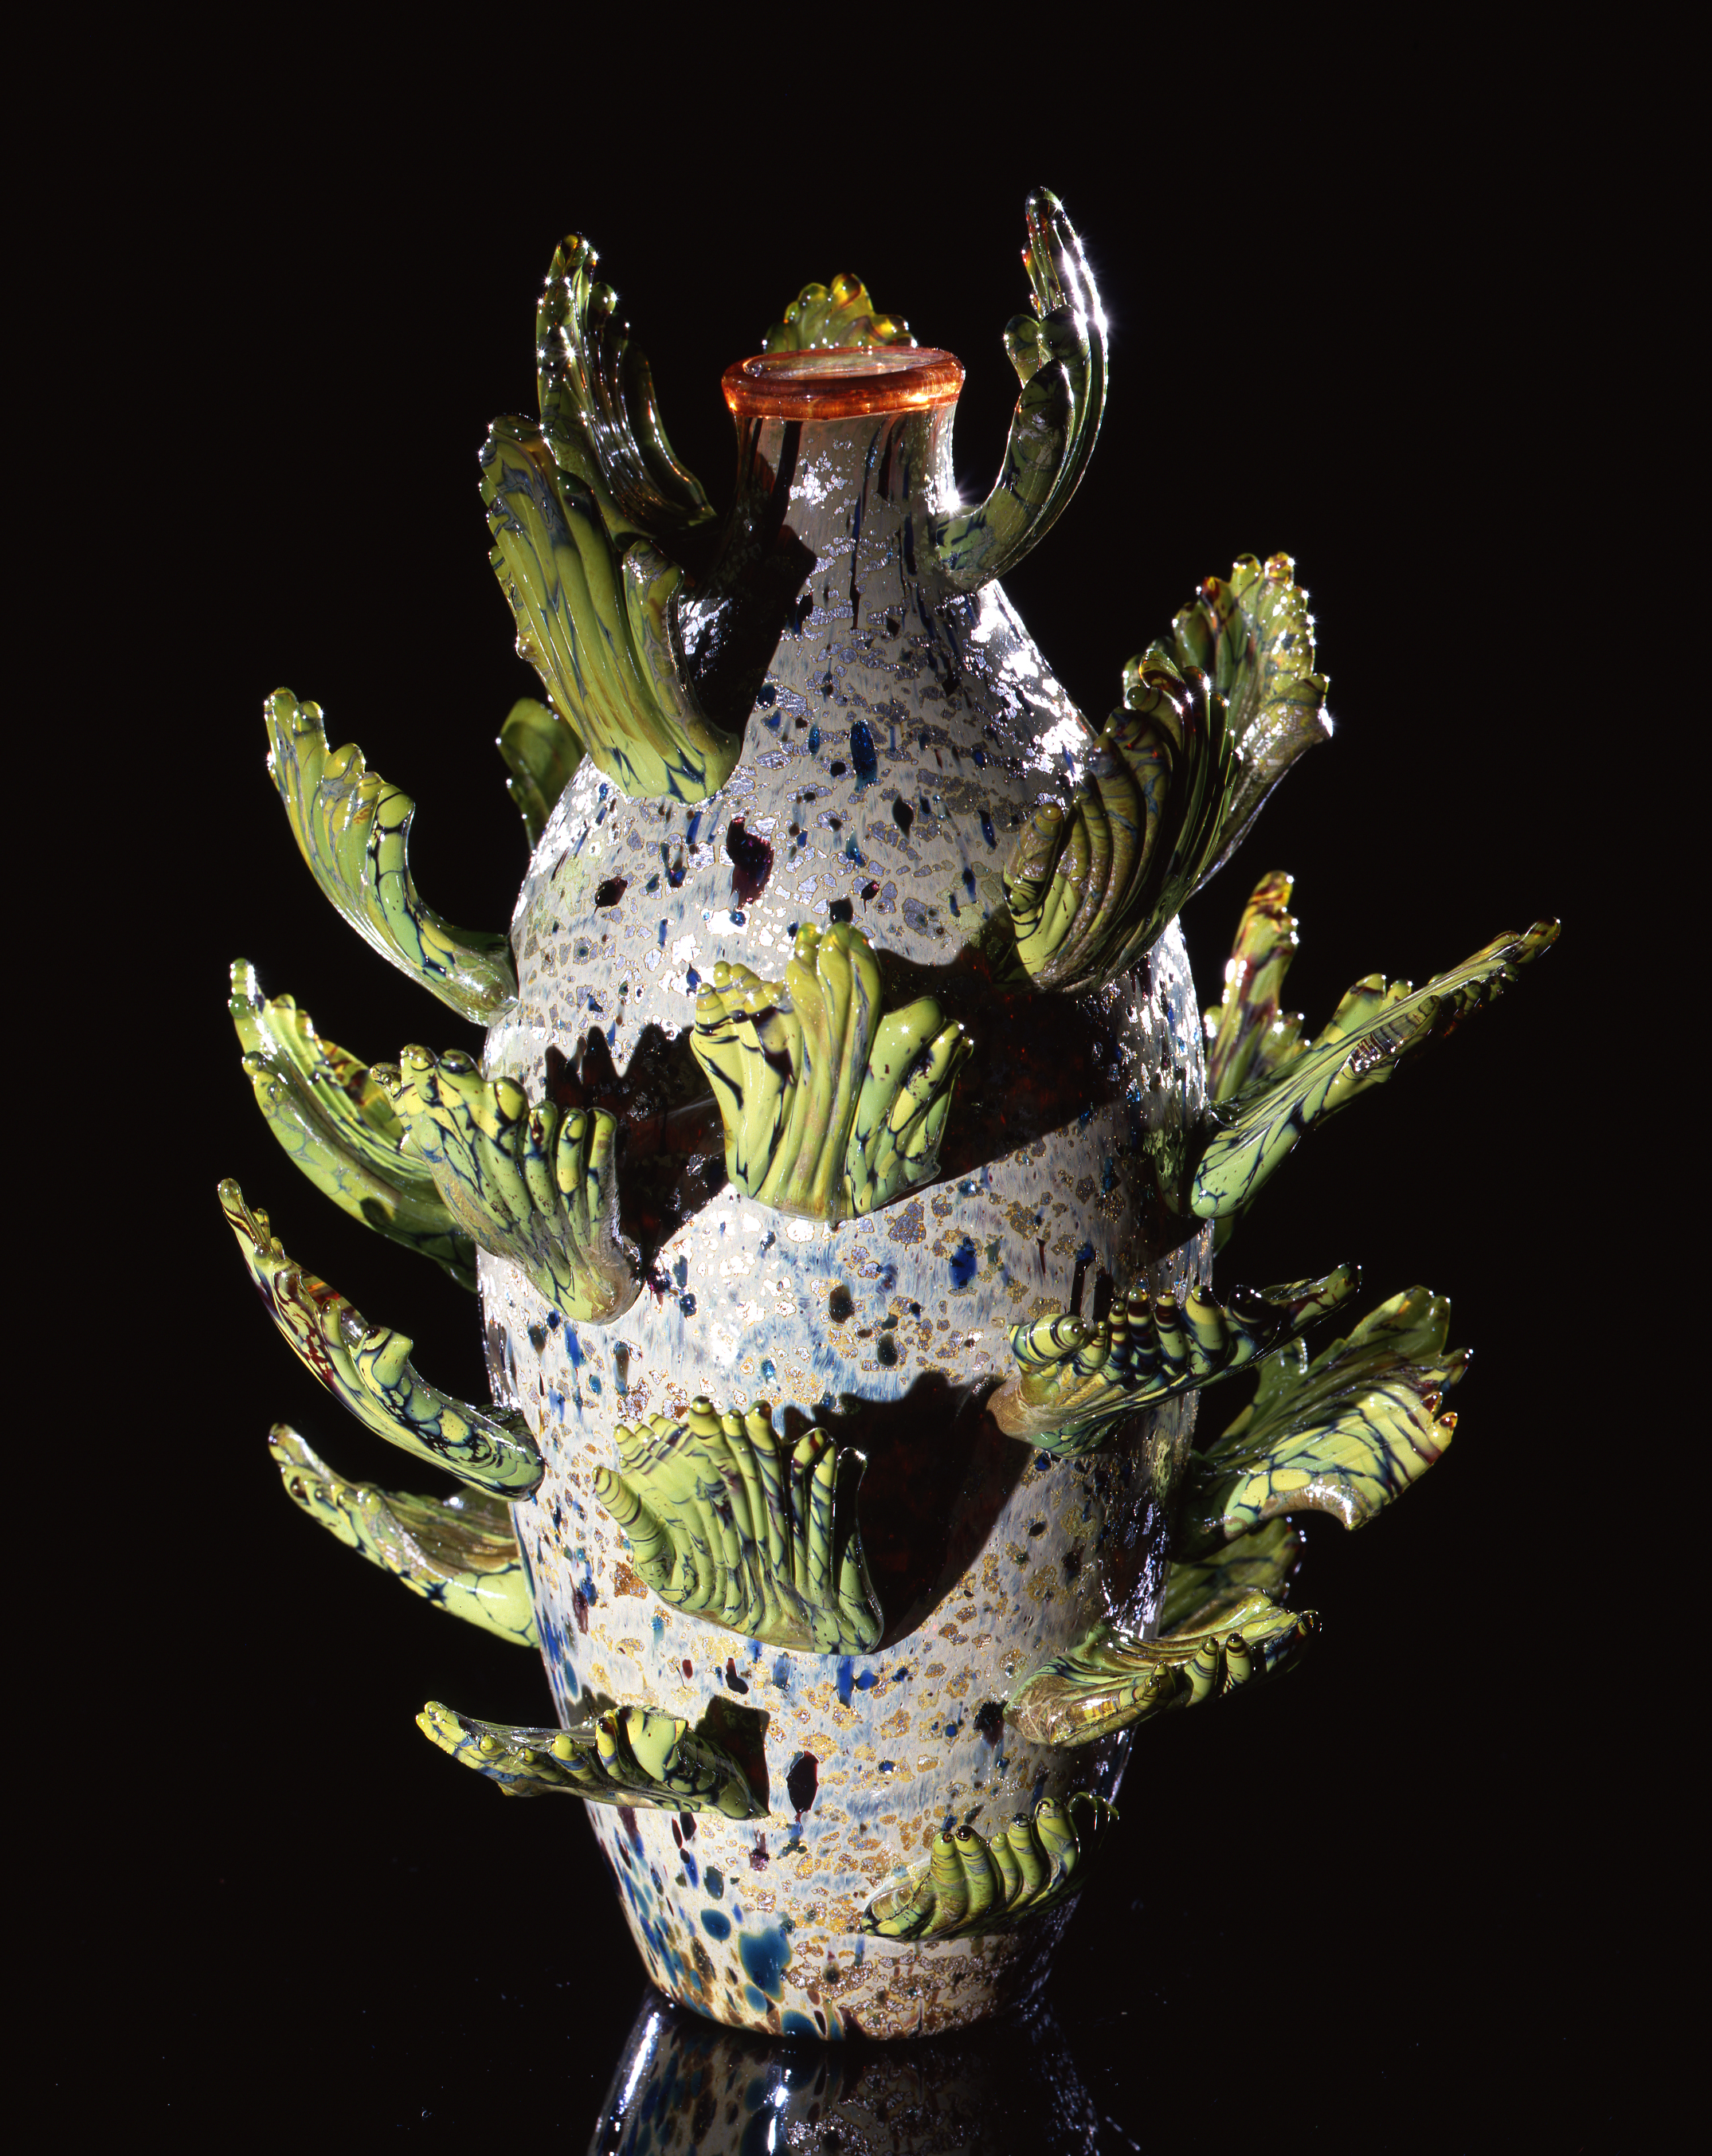 Dale Chihuly,  Silver Piccolo Venetian with Chartreuse Leaves  (1993, glass, 9 x 7 x 7 inches)